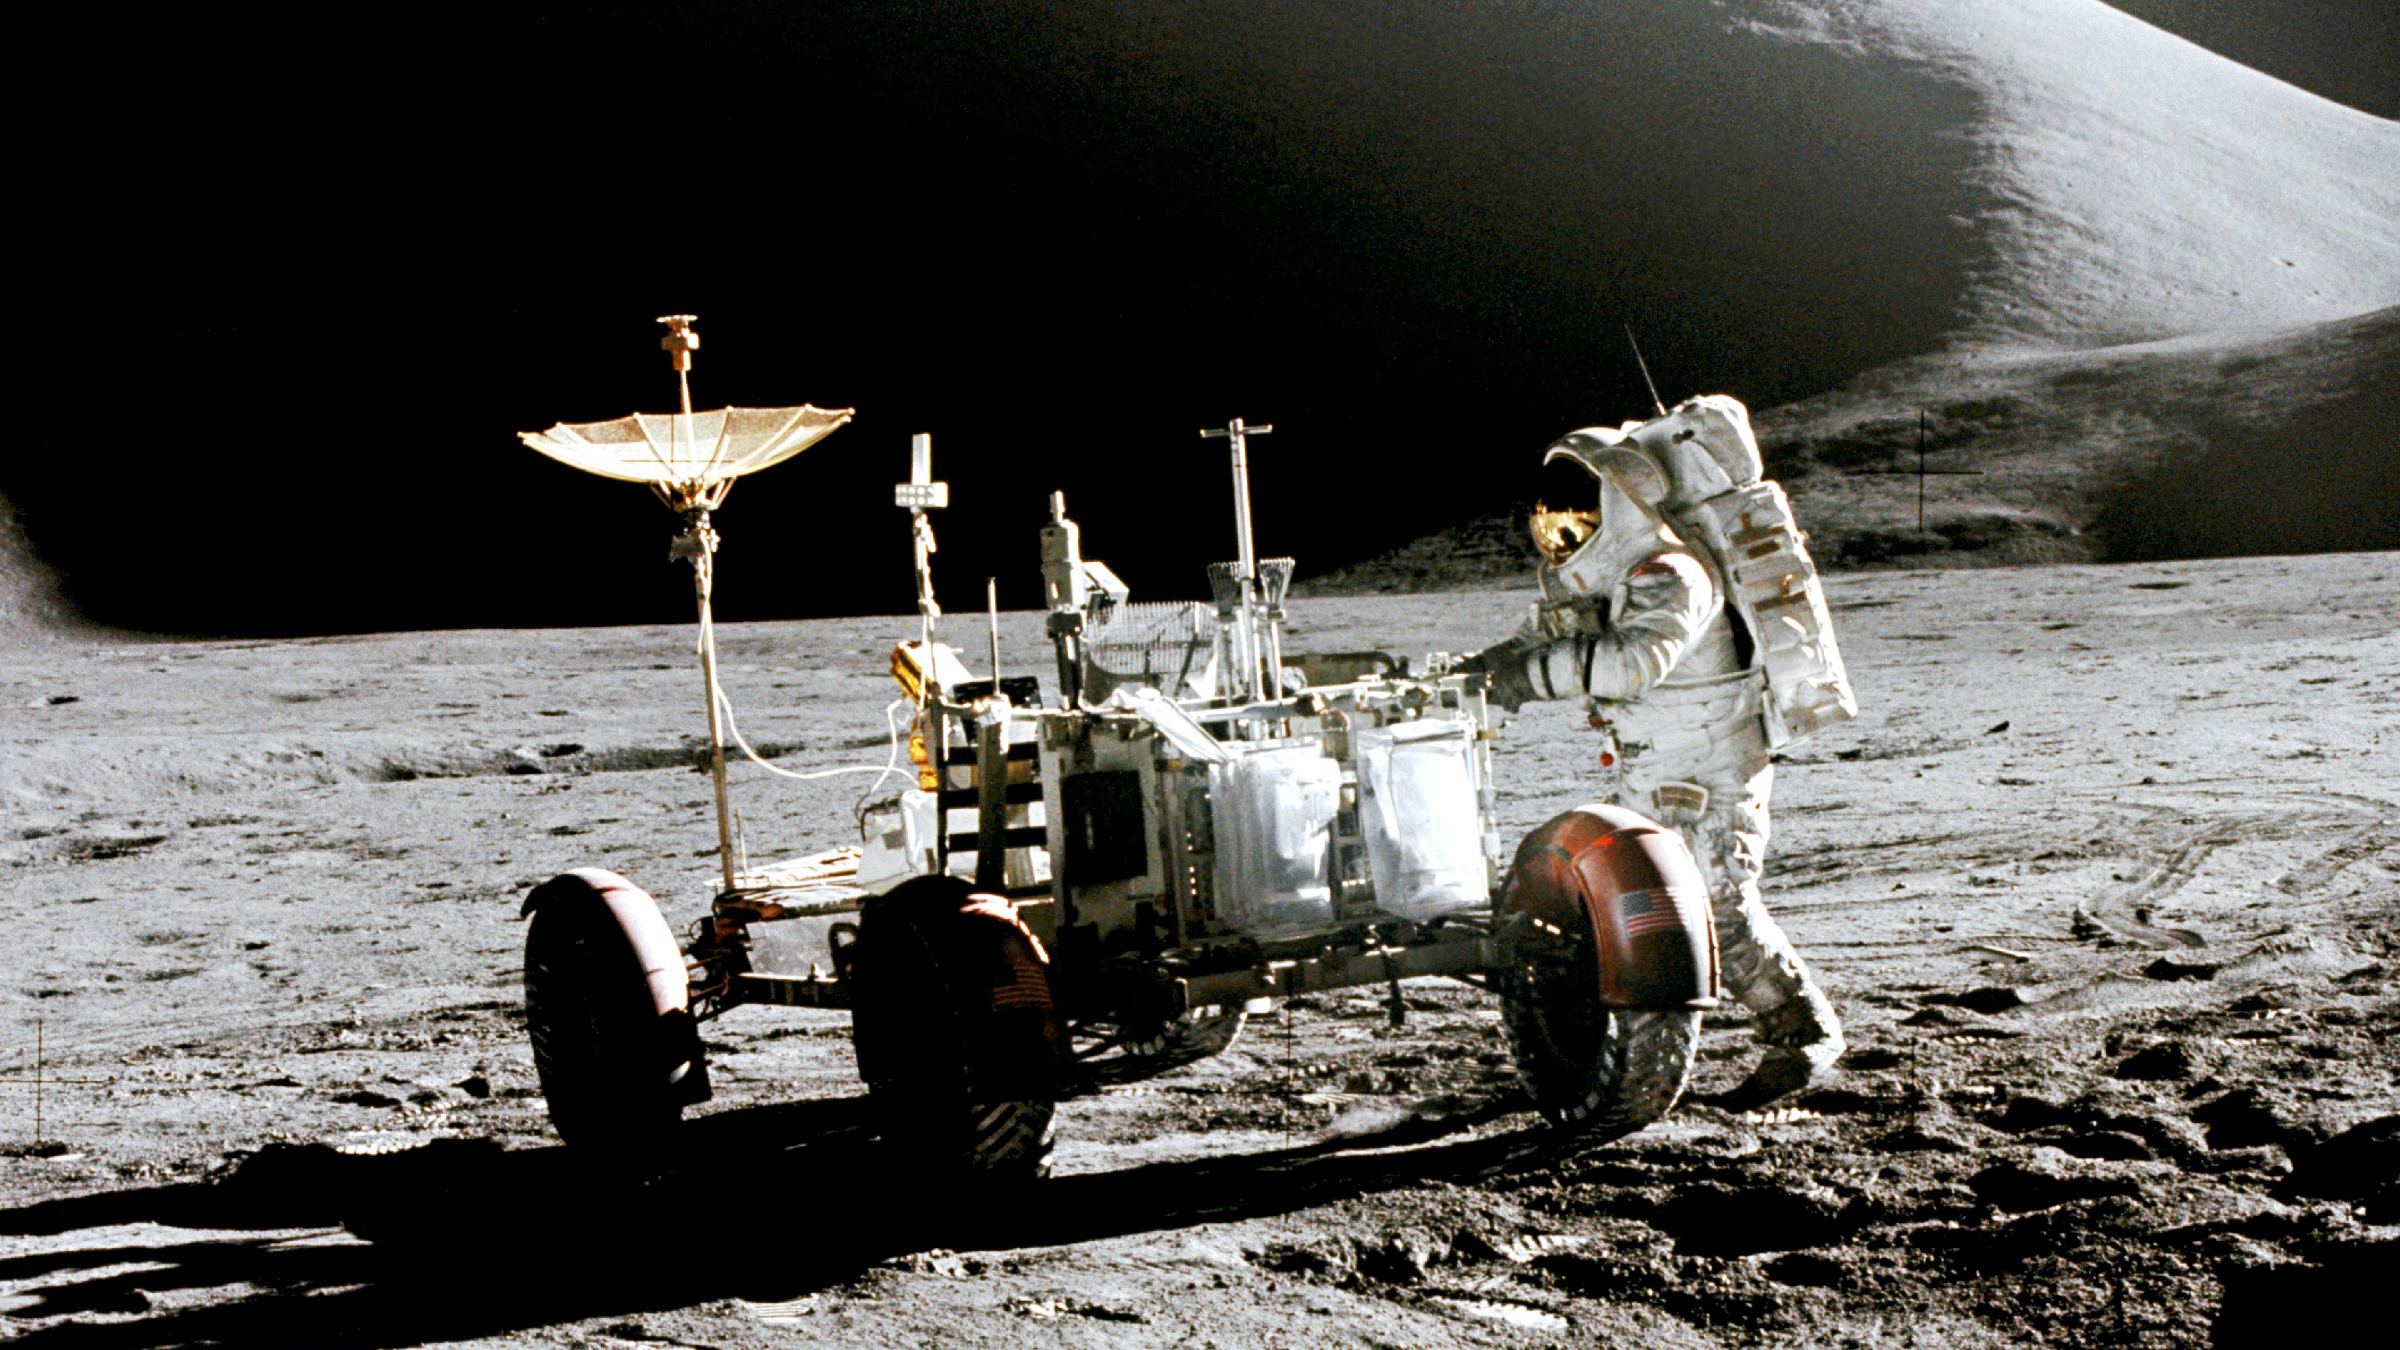 Astronaut Jim Irwin and a lunar rover on the surface of the moon in 1971.